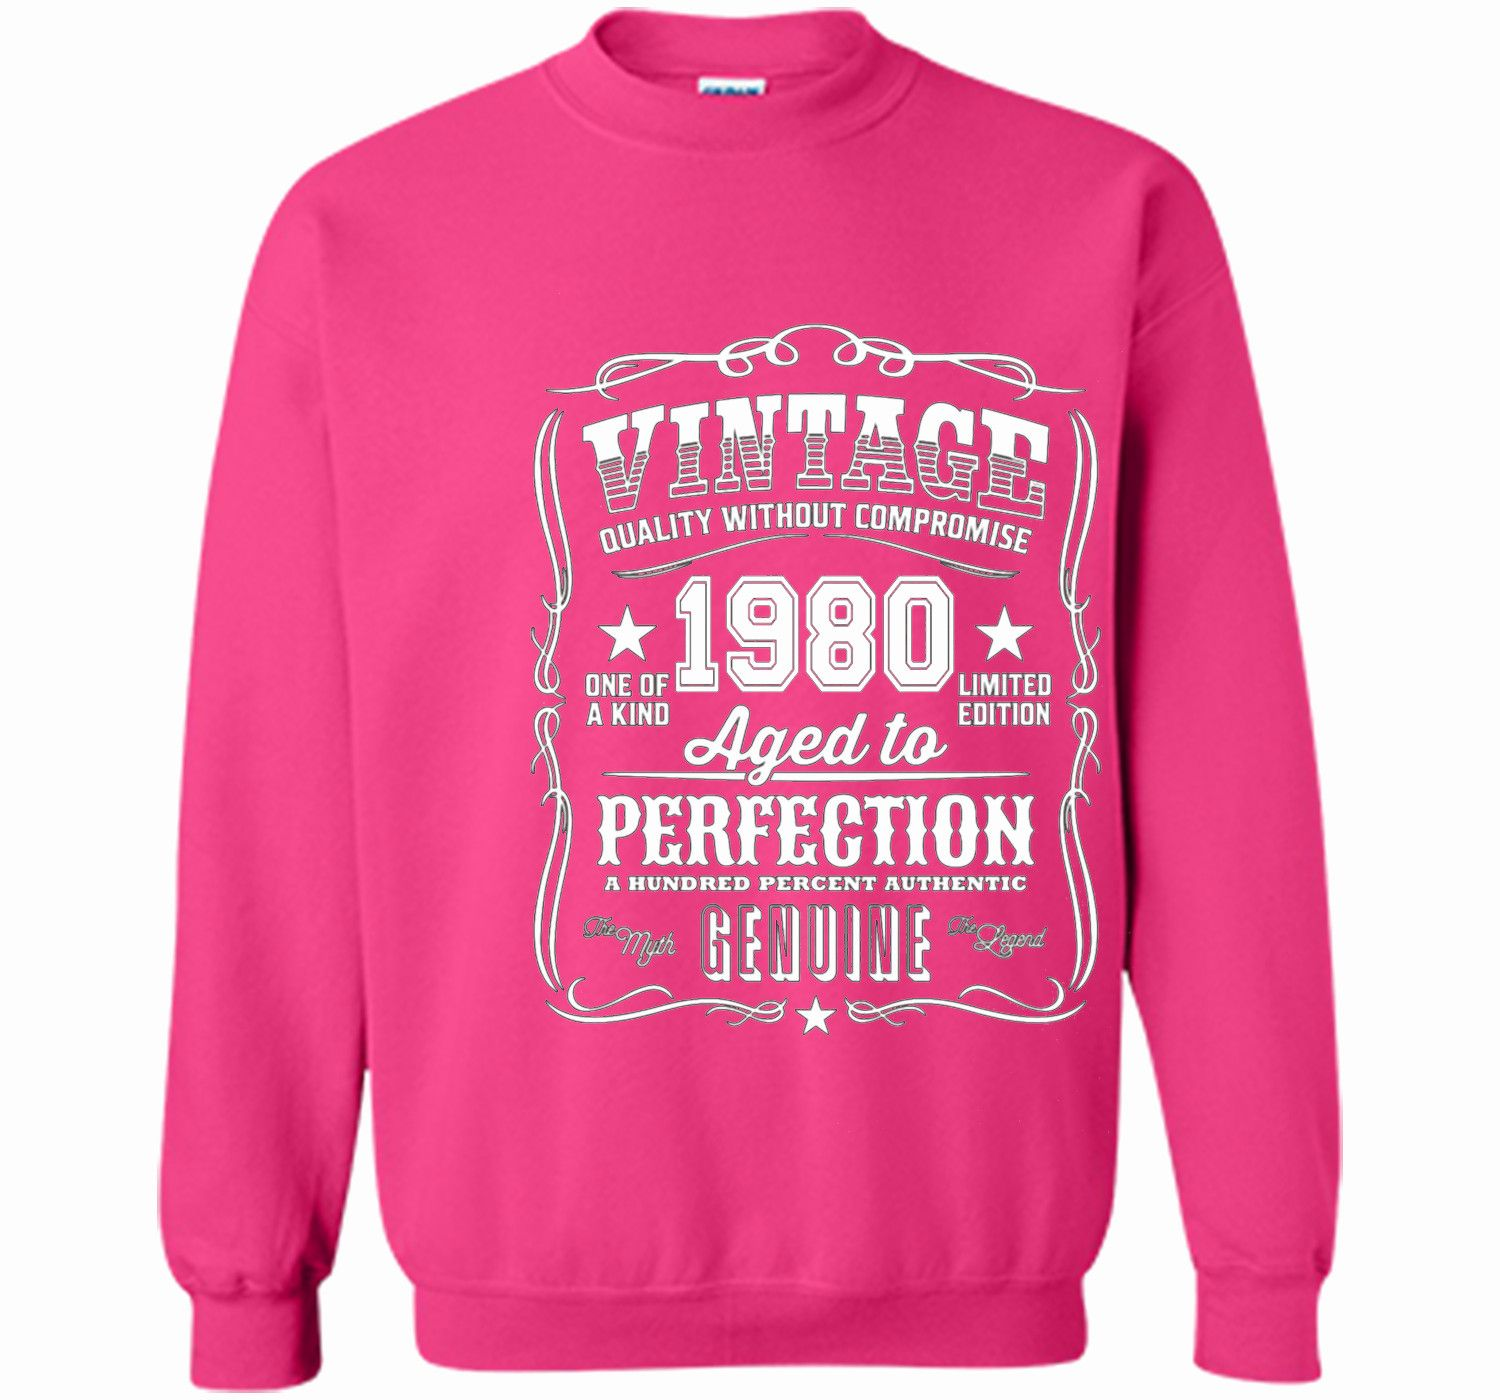 gift ideas for 15 year old boy 13715 Aged to perfection